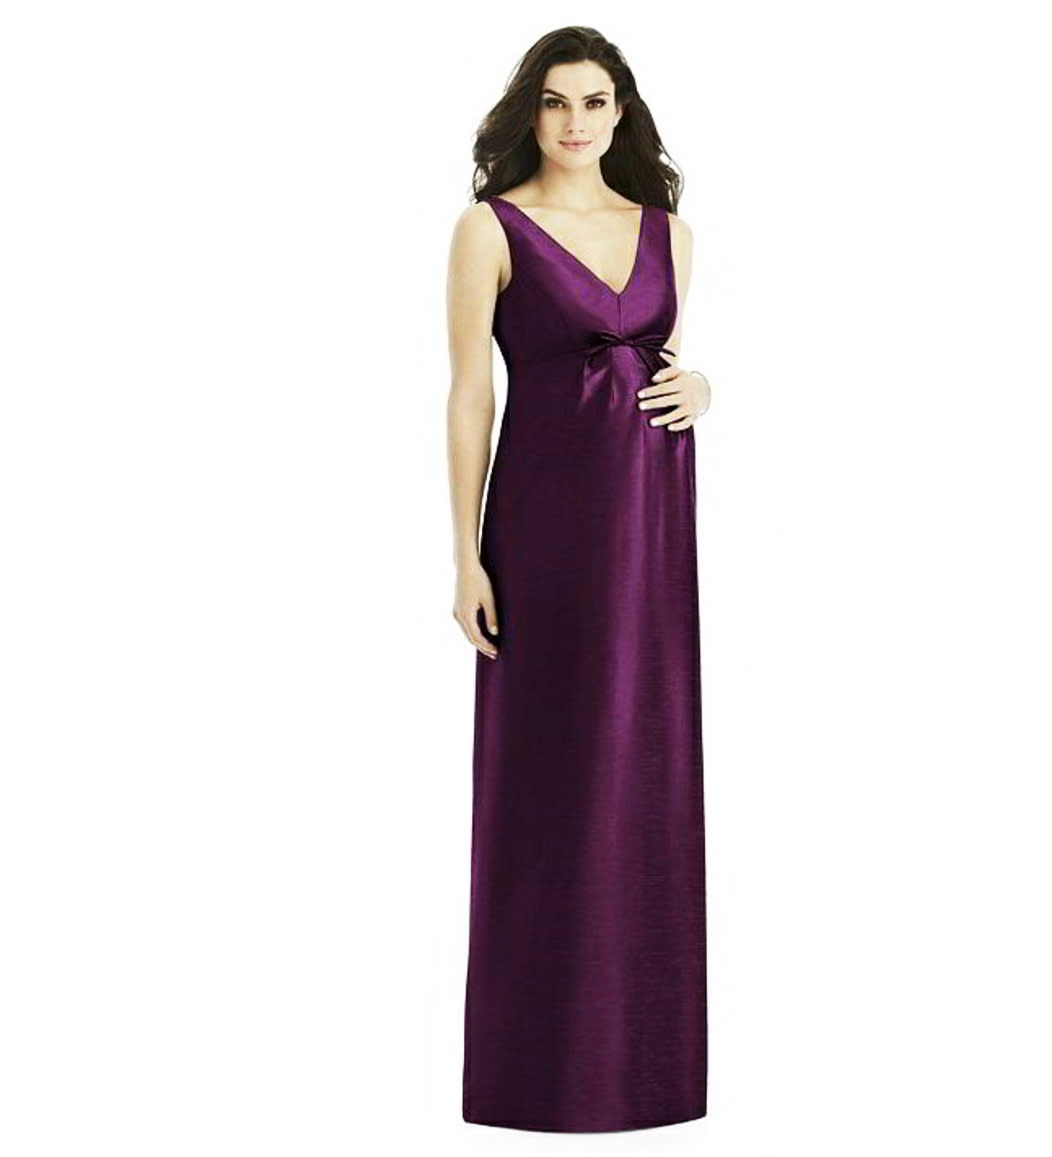 ddc4a1b810a6 Alfred Sung Maternity Bridesmaid Dress by Brand